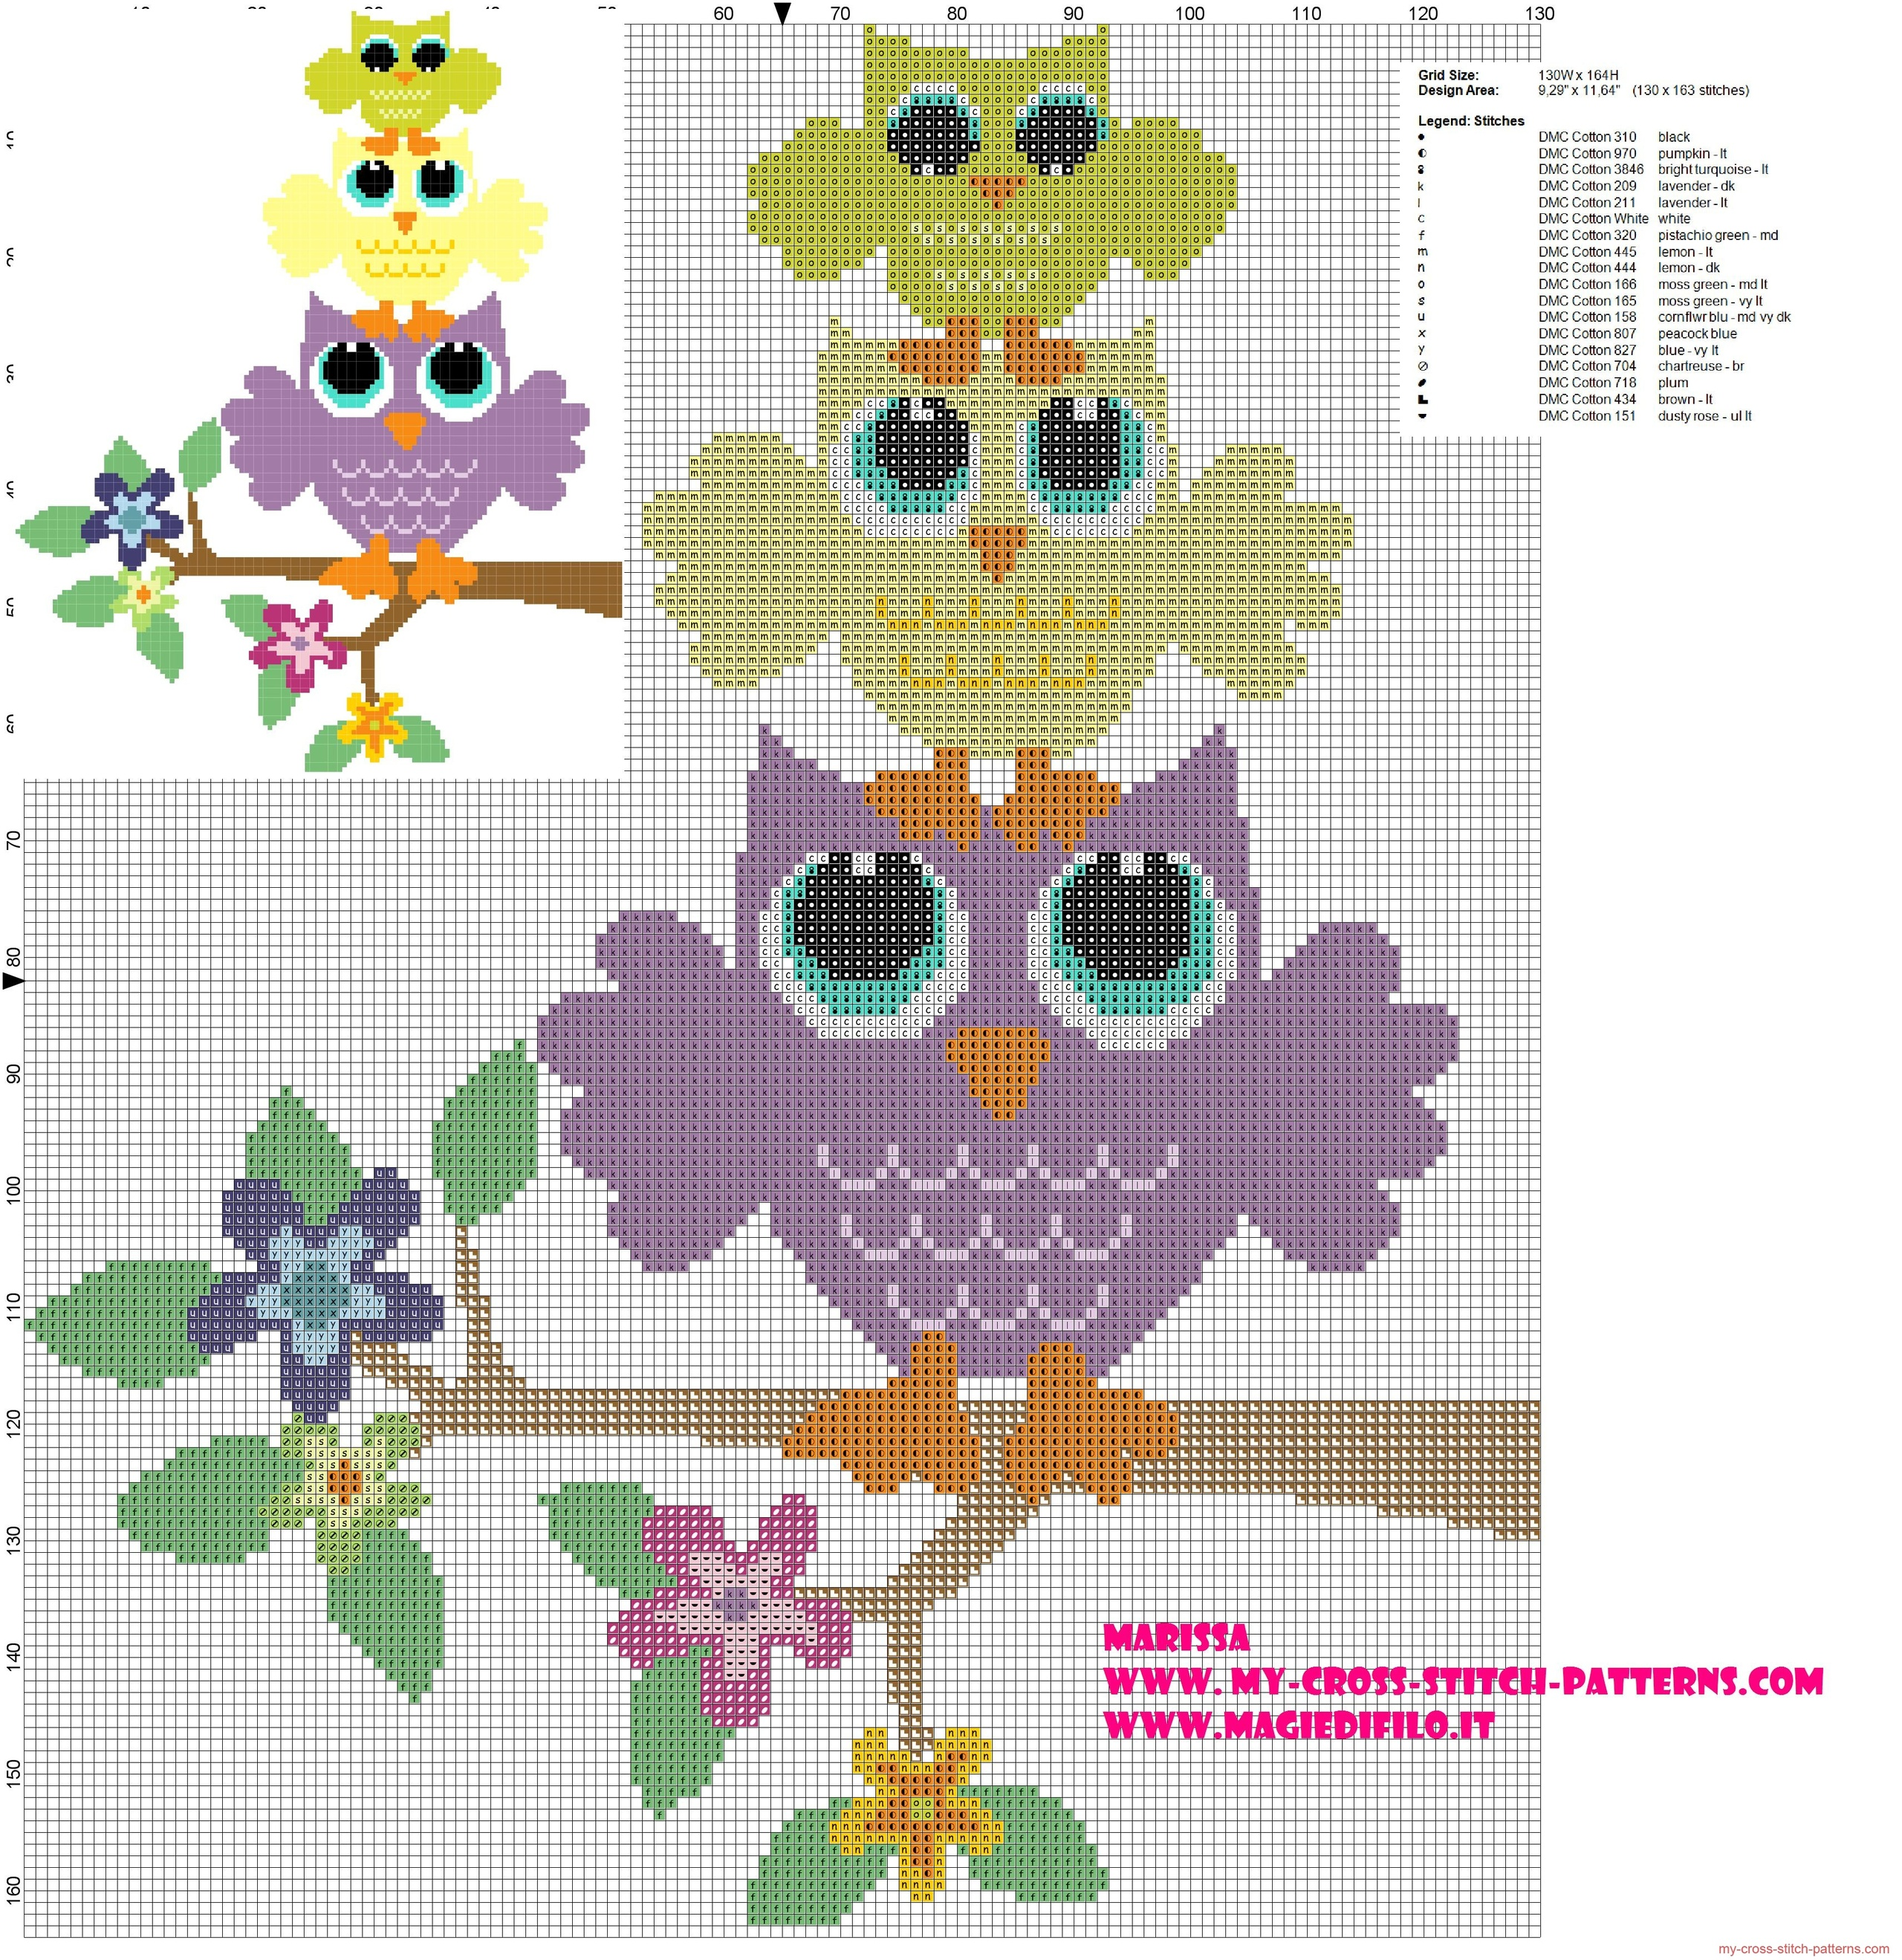 cross_stitch_pattern_with_owls_in_the_tower_of_flowering_branch